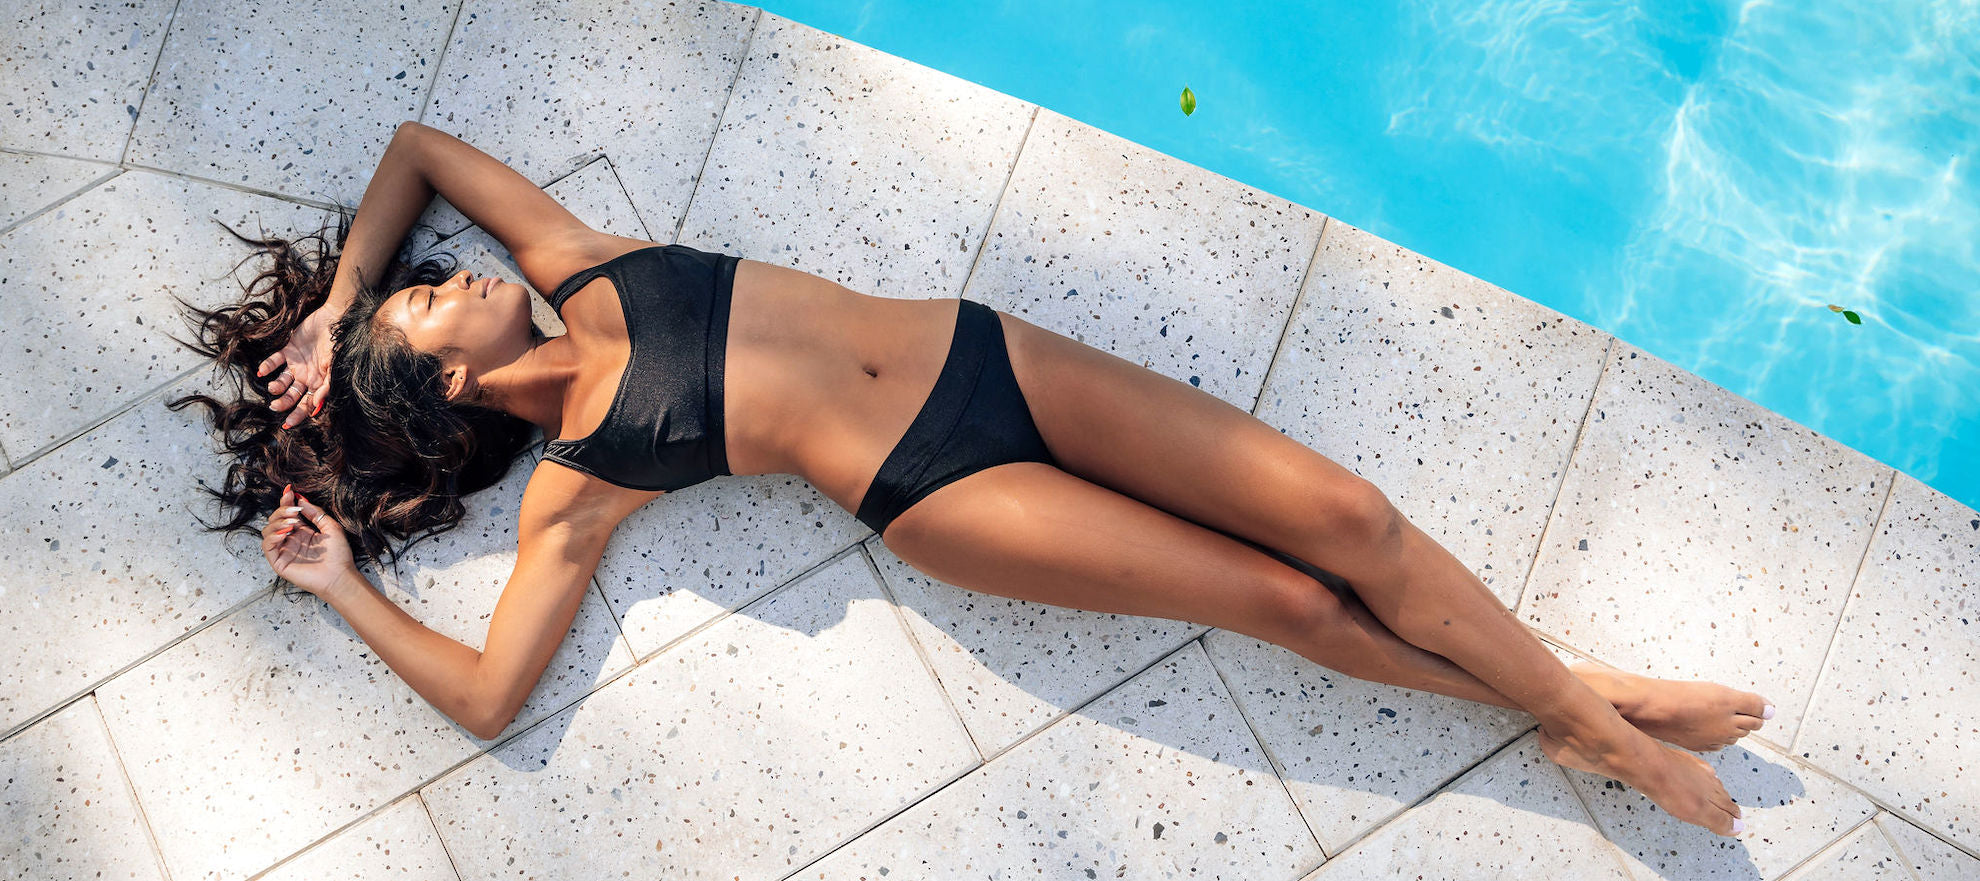 Slender woman lying on white stone tile next to a crystal clear swimming pool in a metallic black two piece bikini